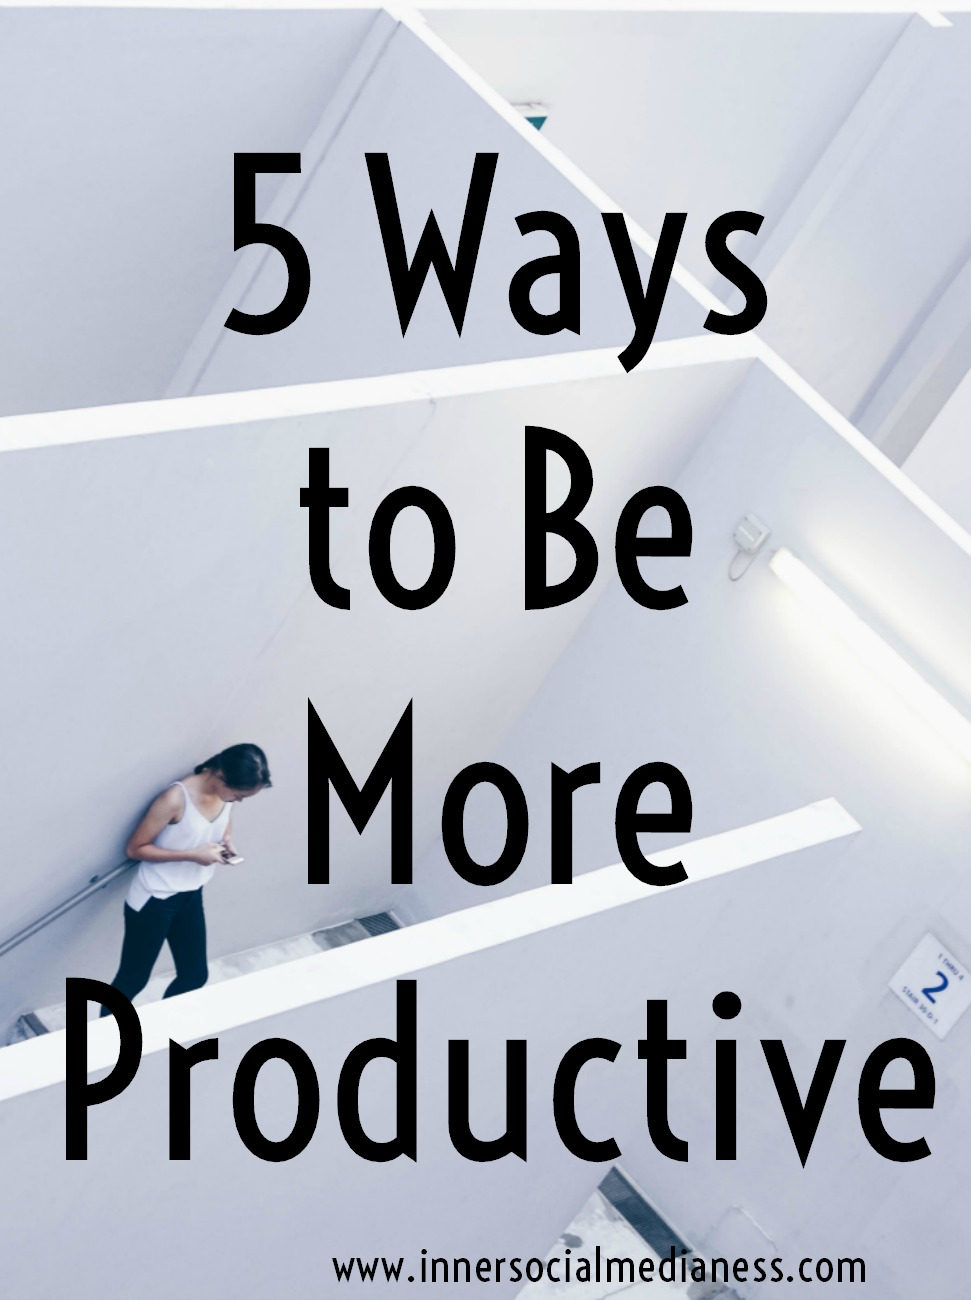 5 Ways to Be More Productive - being more productive means taking a 'productive break' to help you get more done. Not sure how to take a productive break in your day? Here's some ideas to get you started.